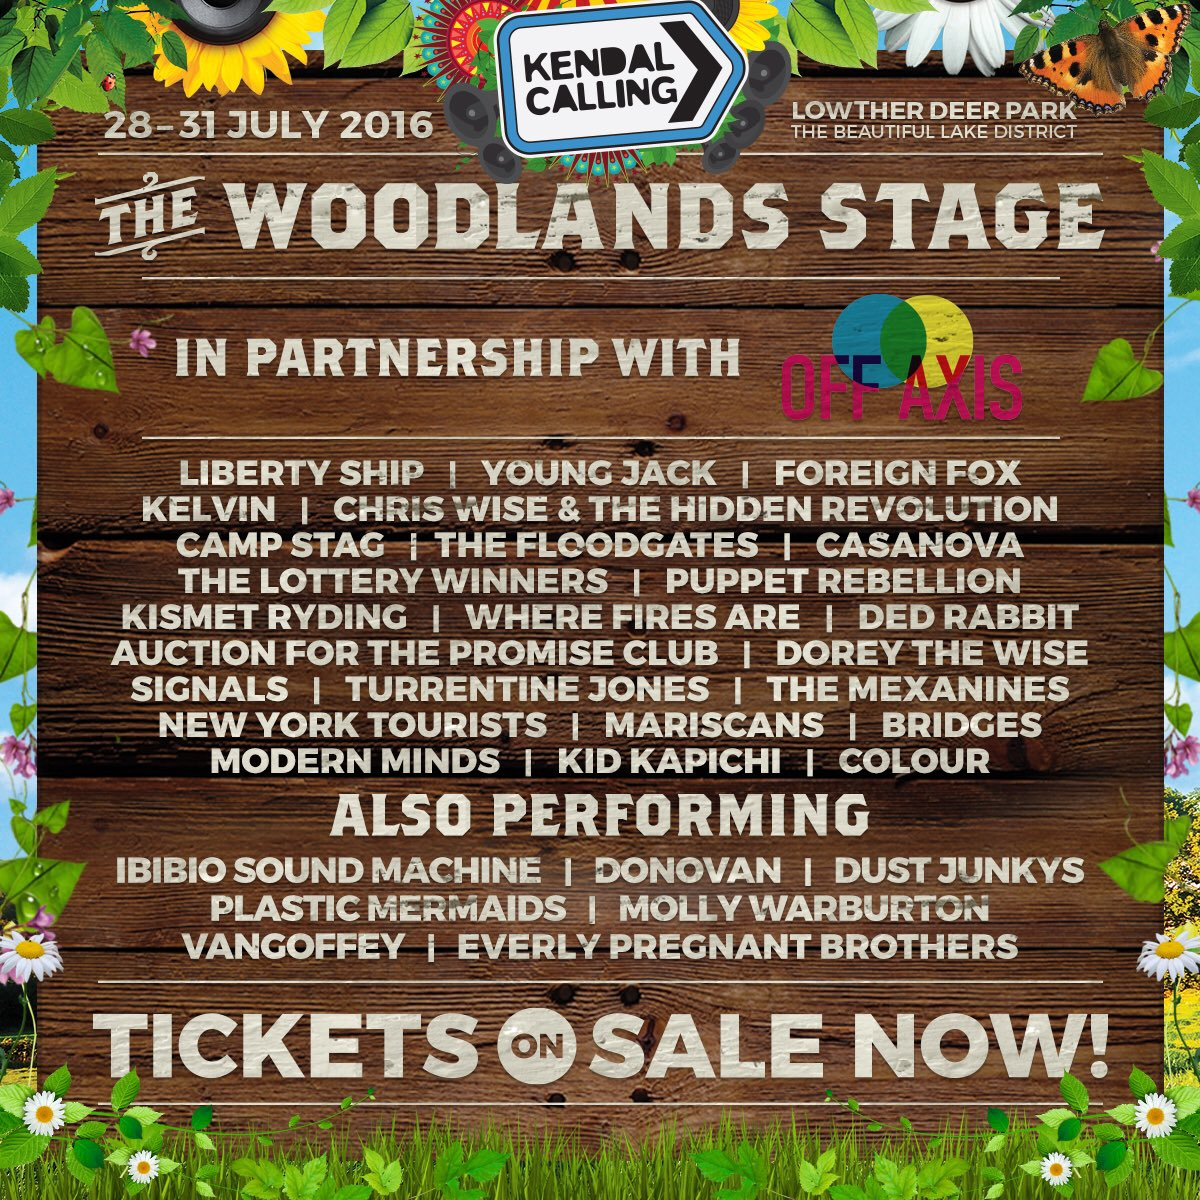 We're delighted to be part of the @OffAxisNetwork stage at this years @KendalCalling, check out the line up here... https://t.co/6VNMXgWoIy